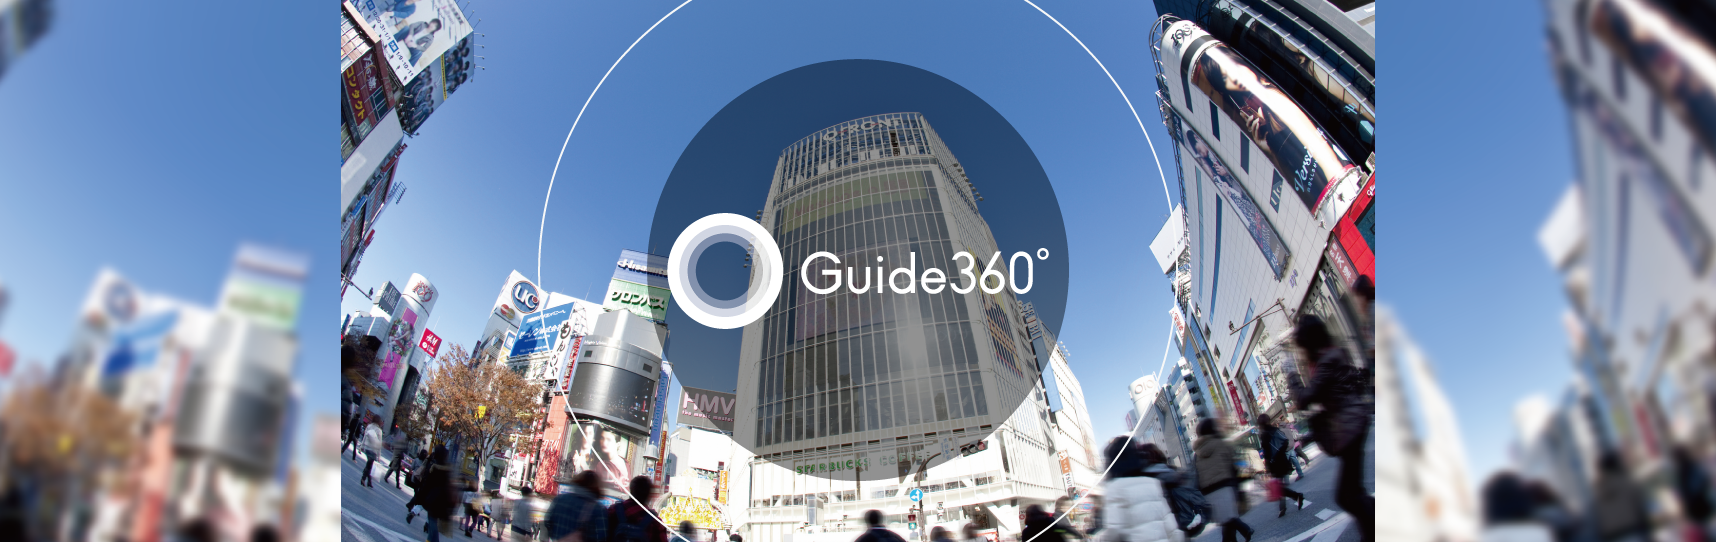 Guide360titlewide.png